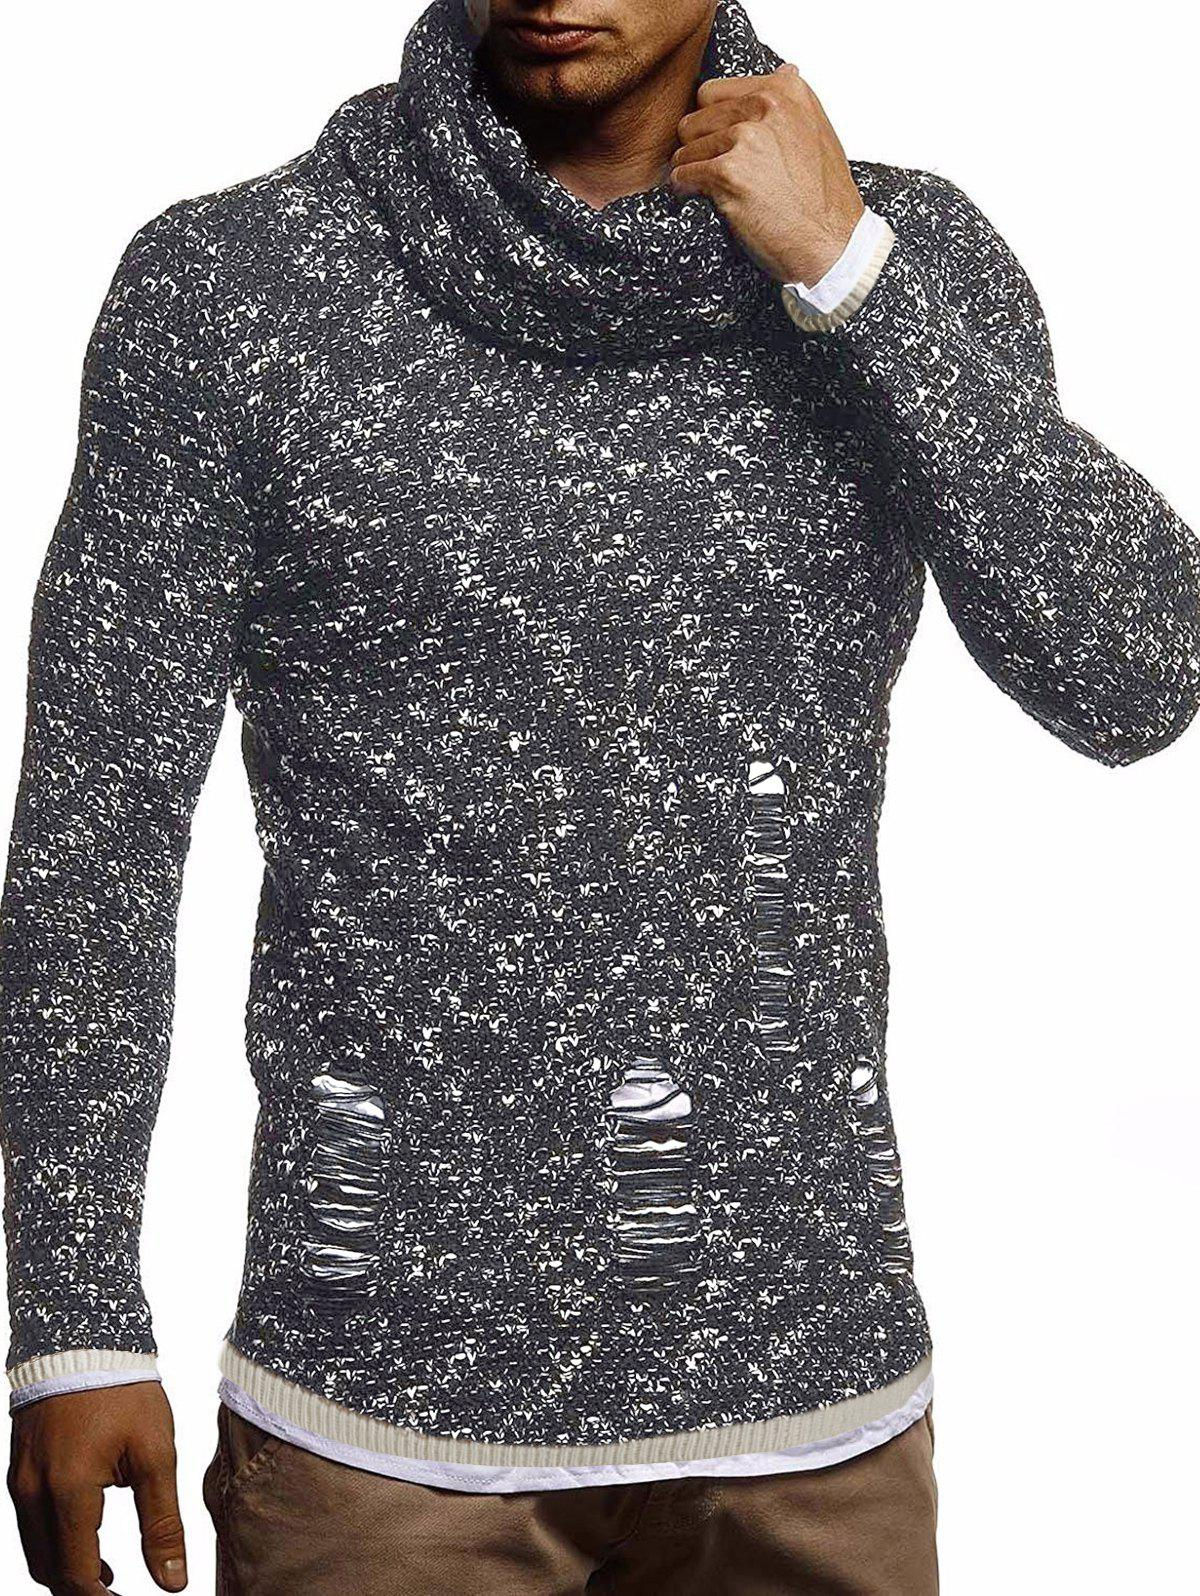 Ripped Decorated Casual Pullover Sweater - BLACK S